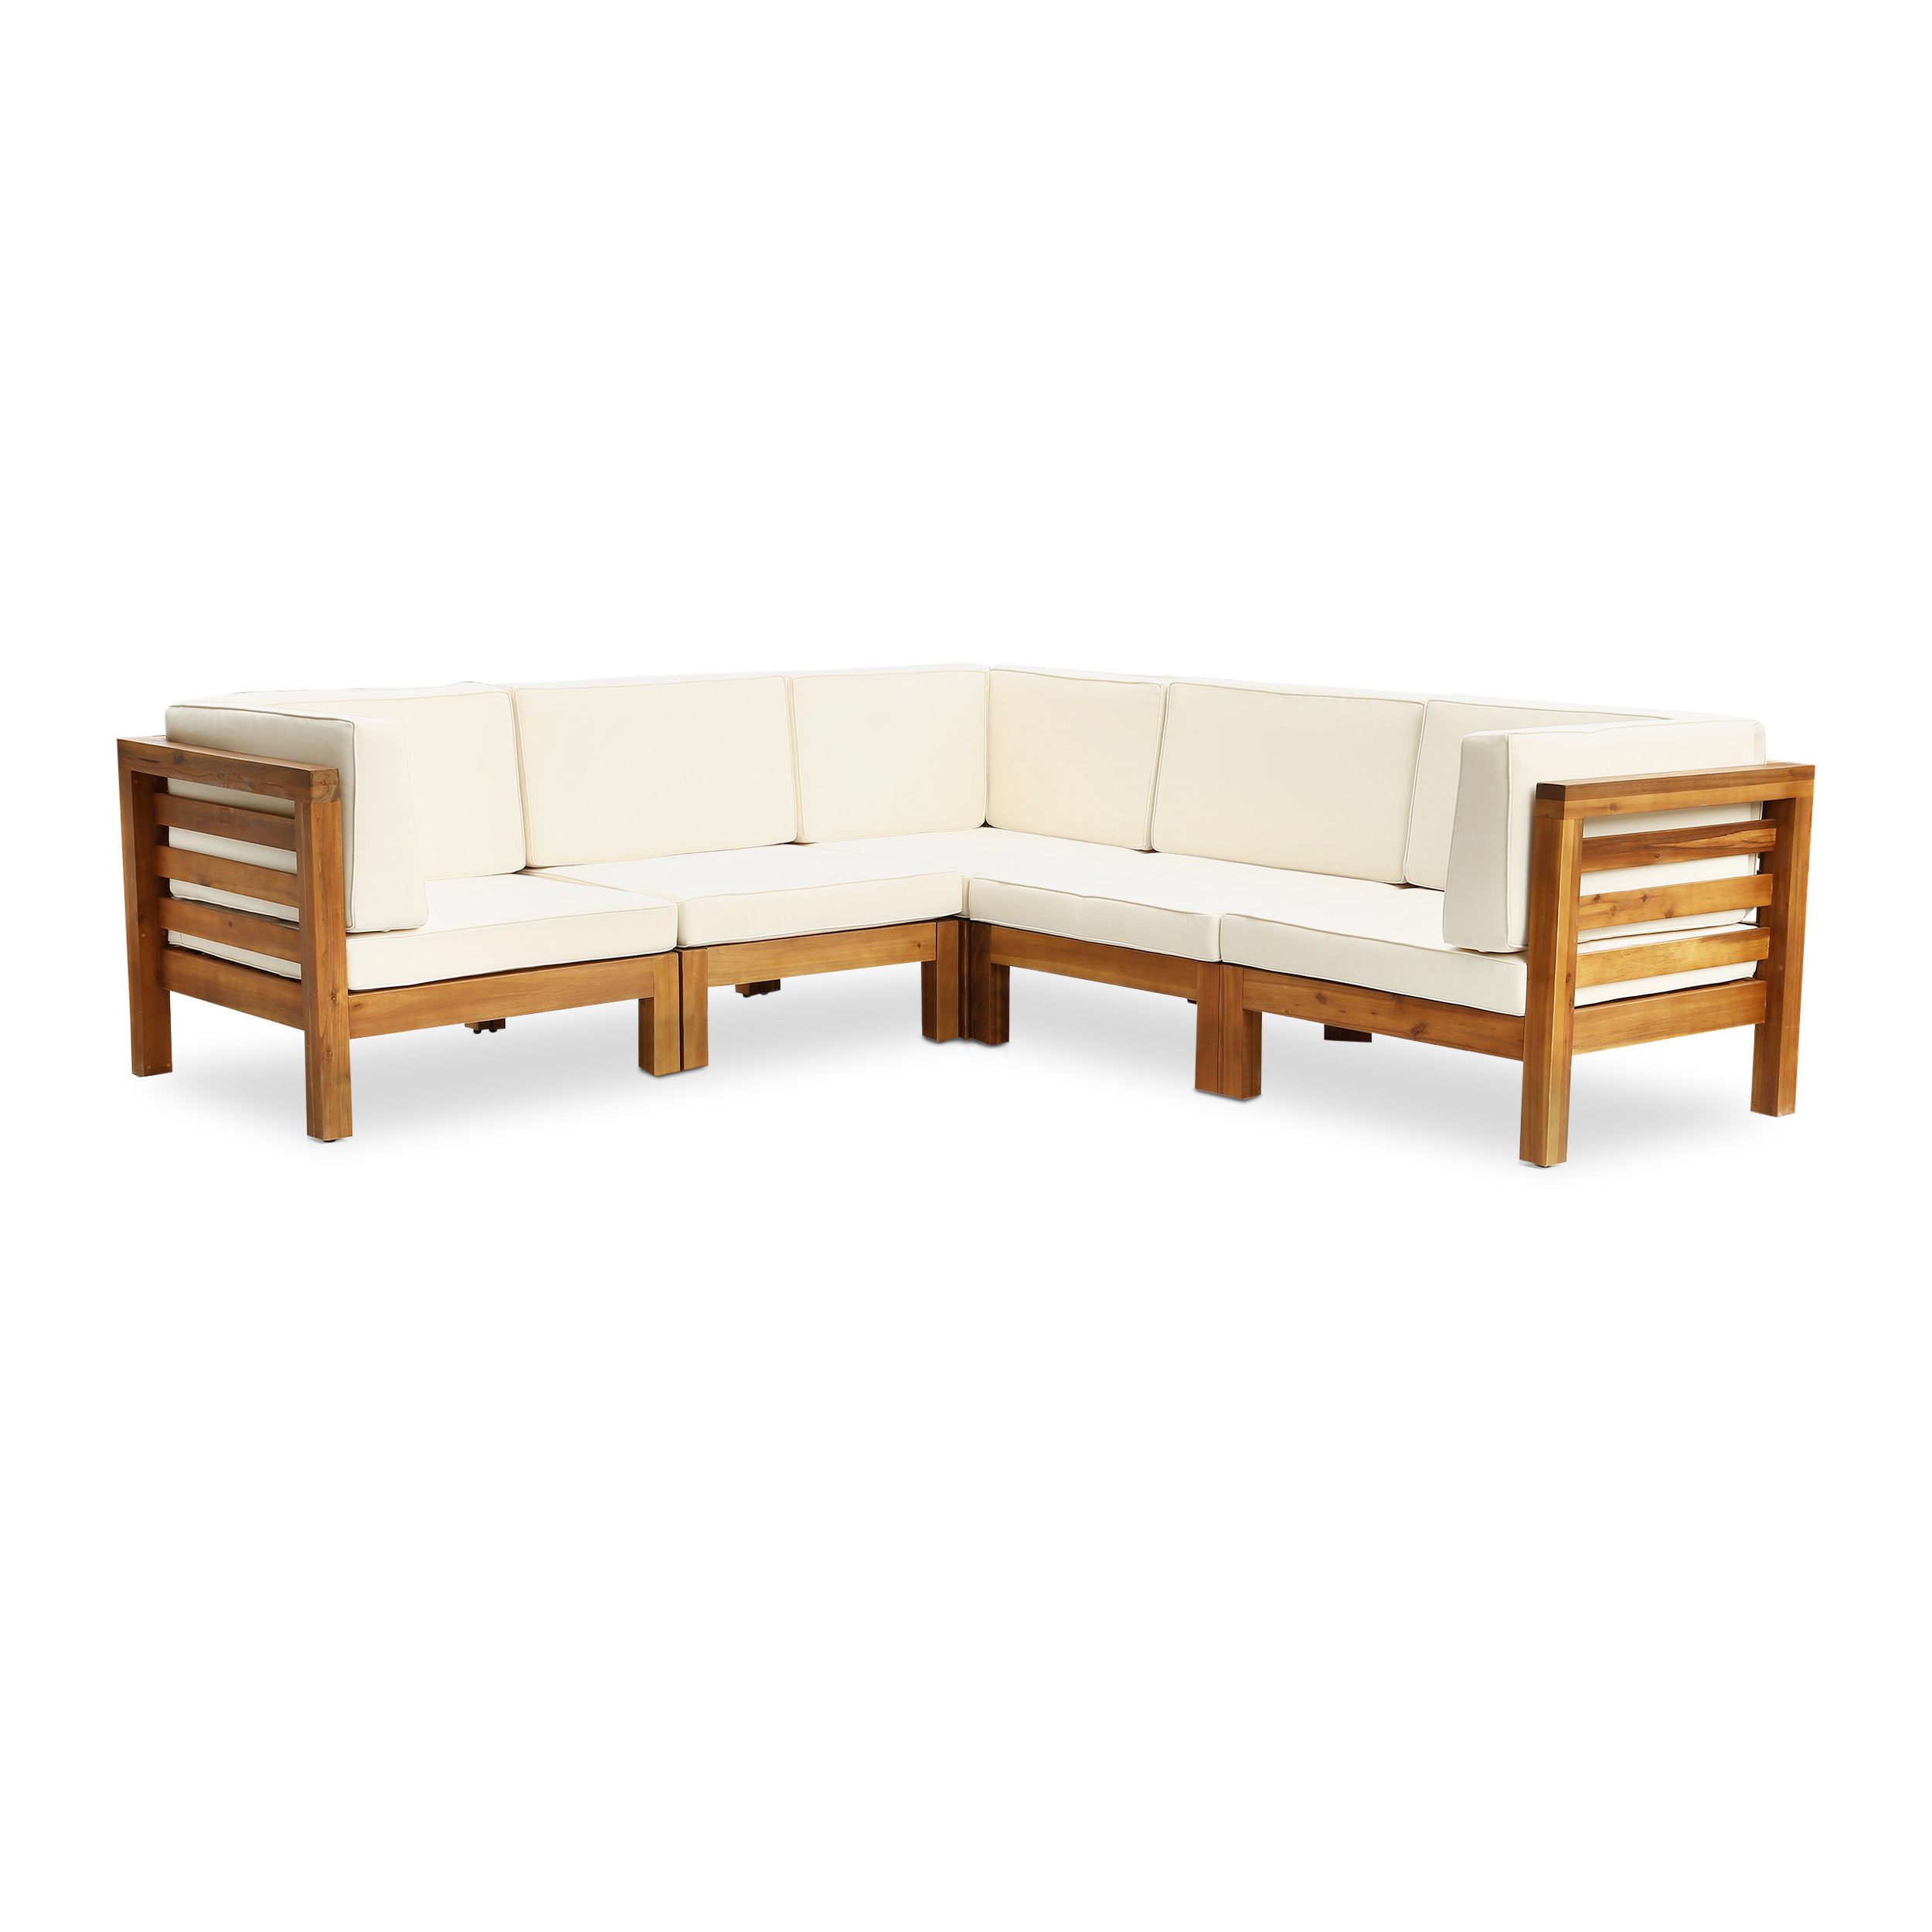 Seaham Teak Patio Sectional With Cushions With Trendy Seaham Patio Sectionals With Cushions (View 15 of 20)